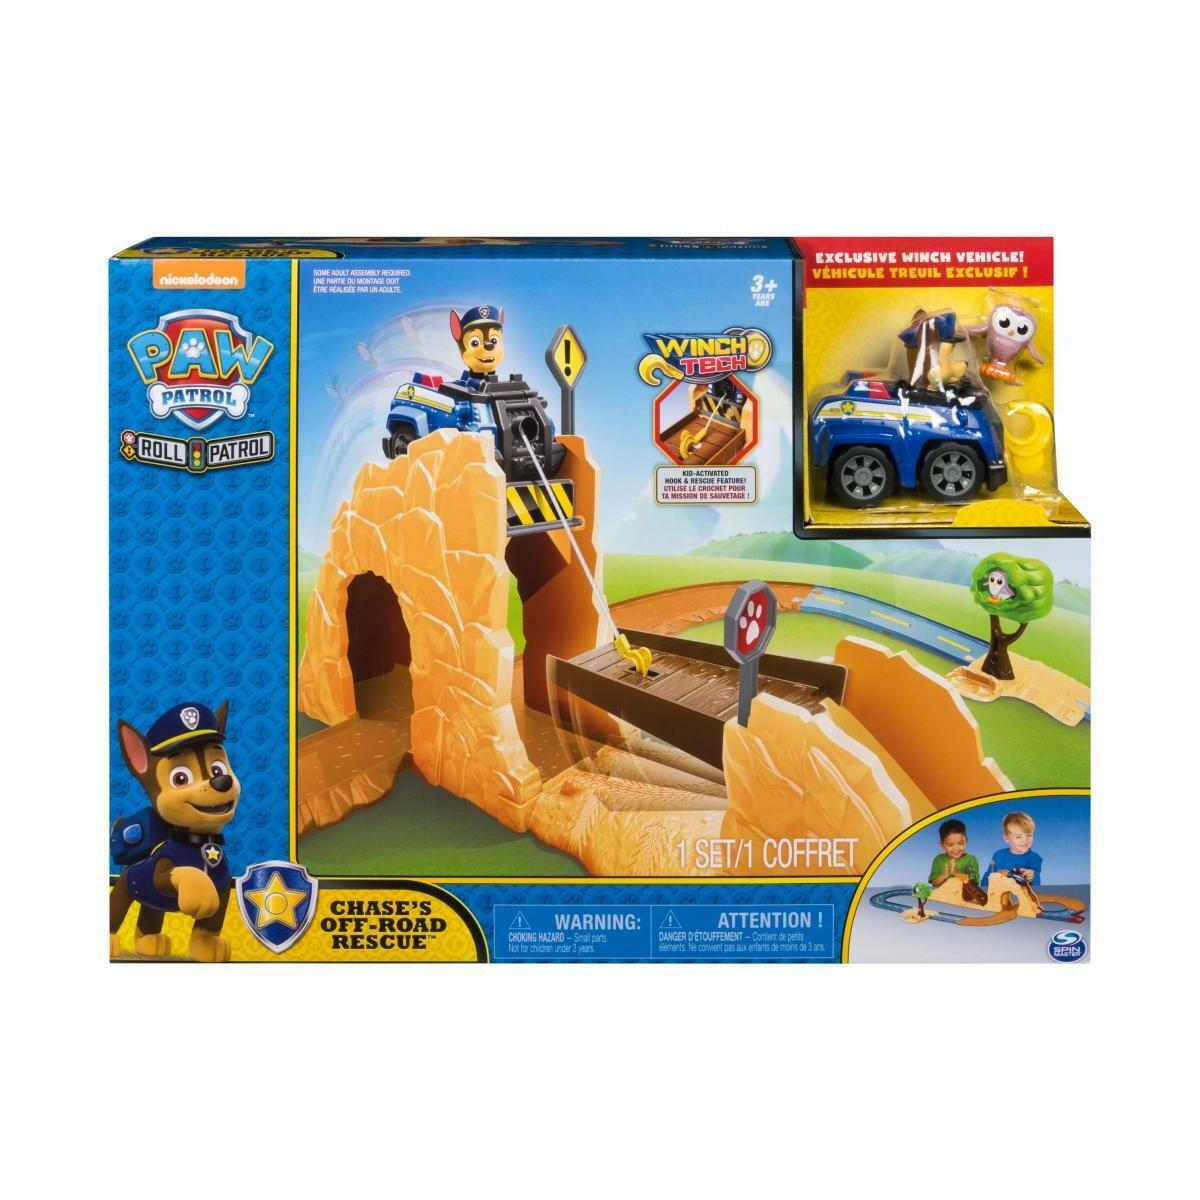 Paw Patrol Roll Patrol Chase Off-Road Rescue Playset Christmas Birthday Gift